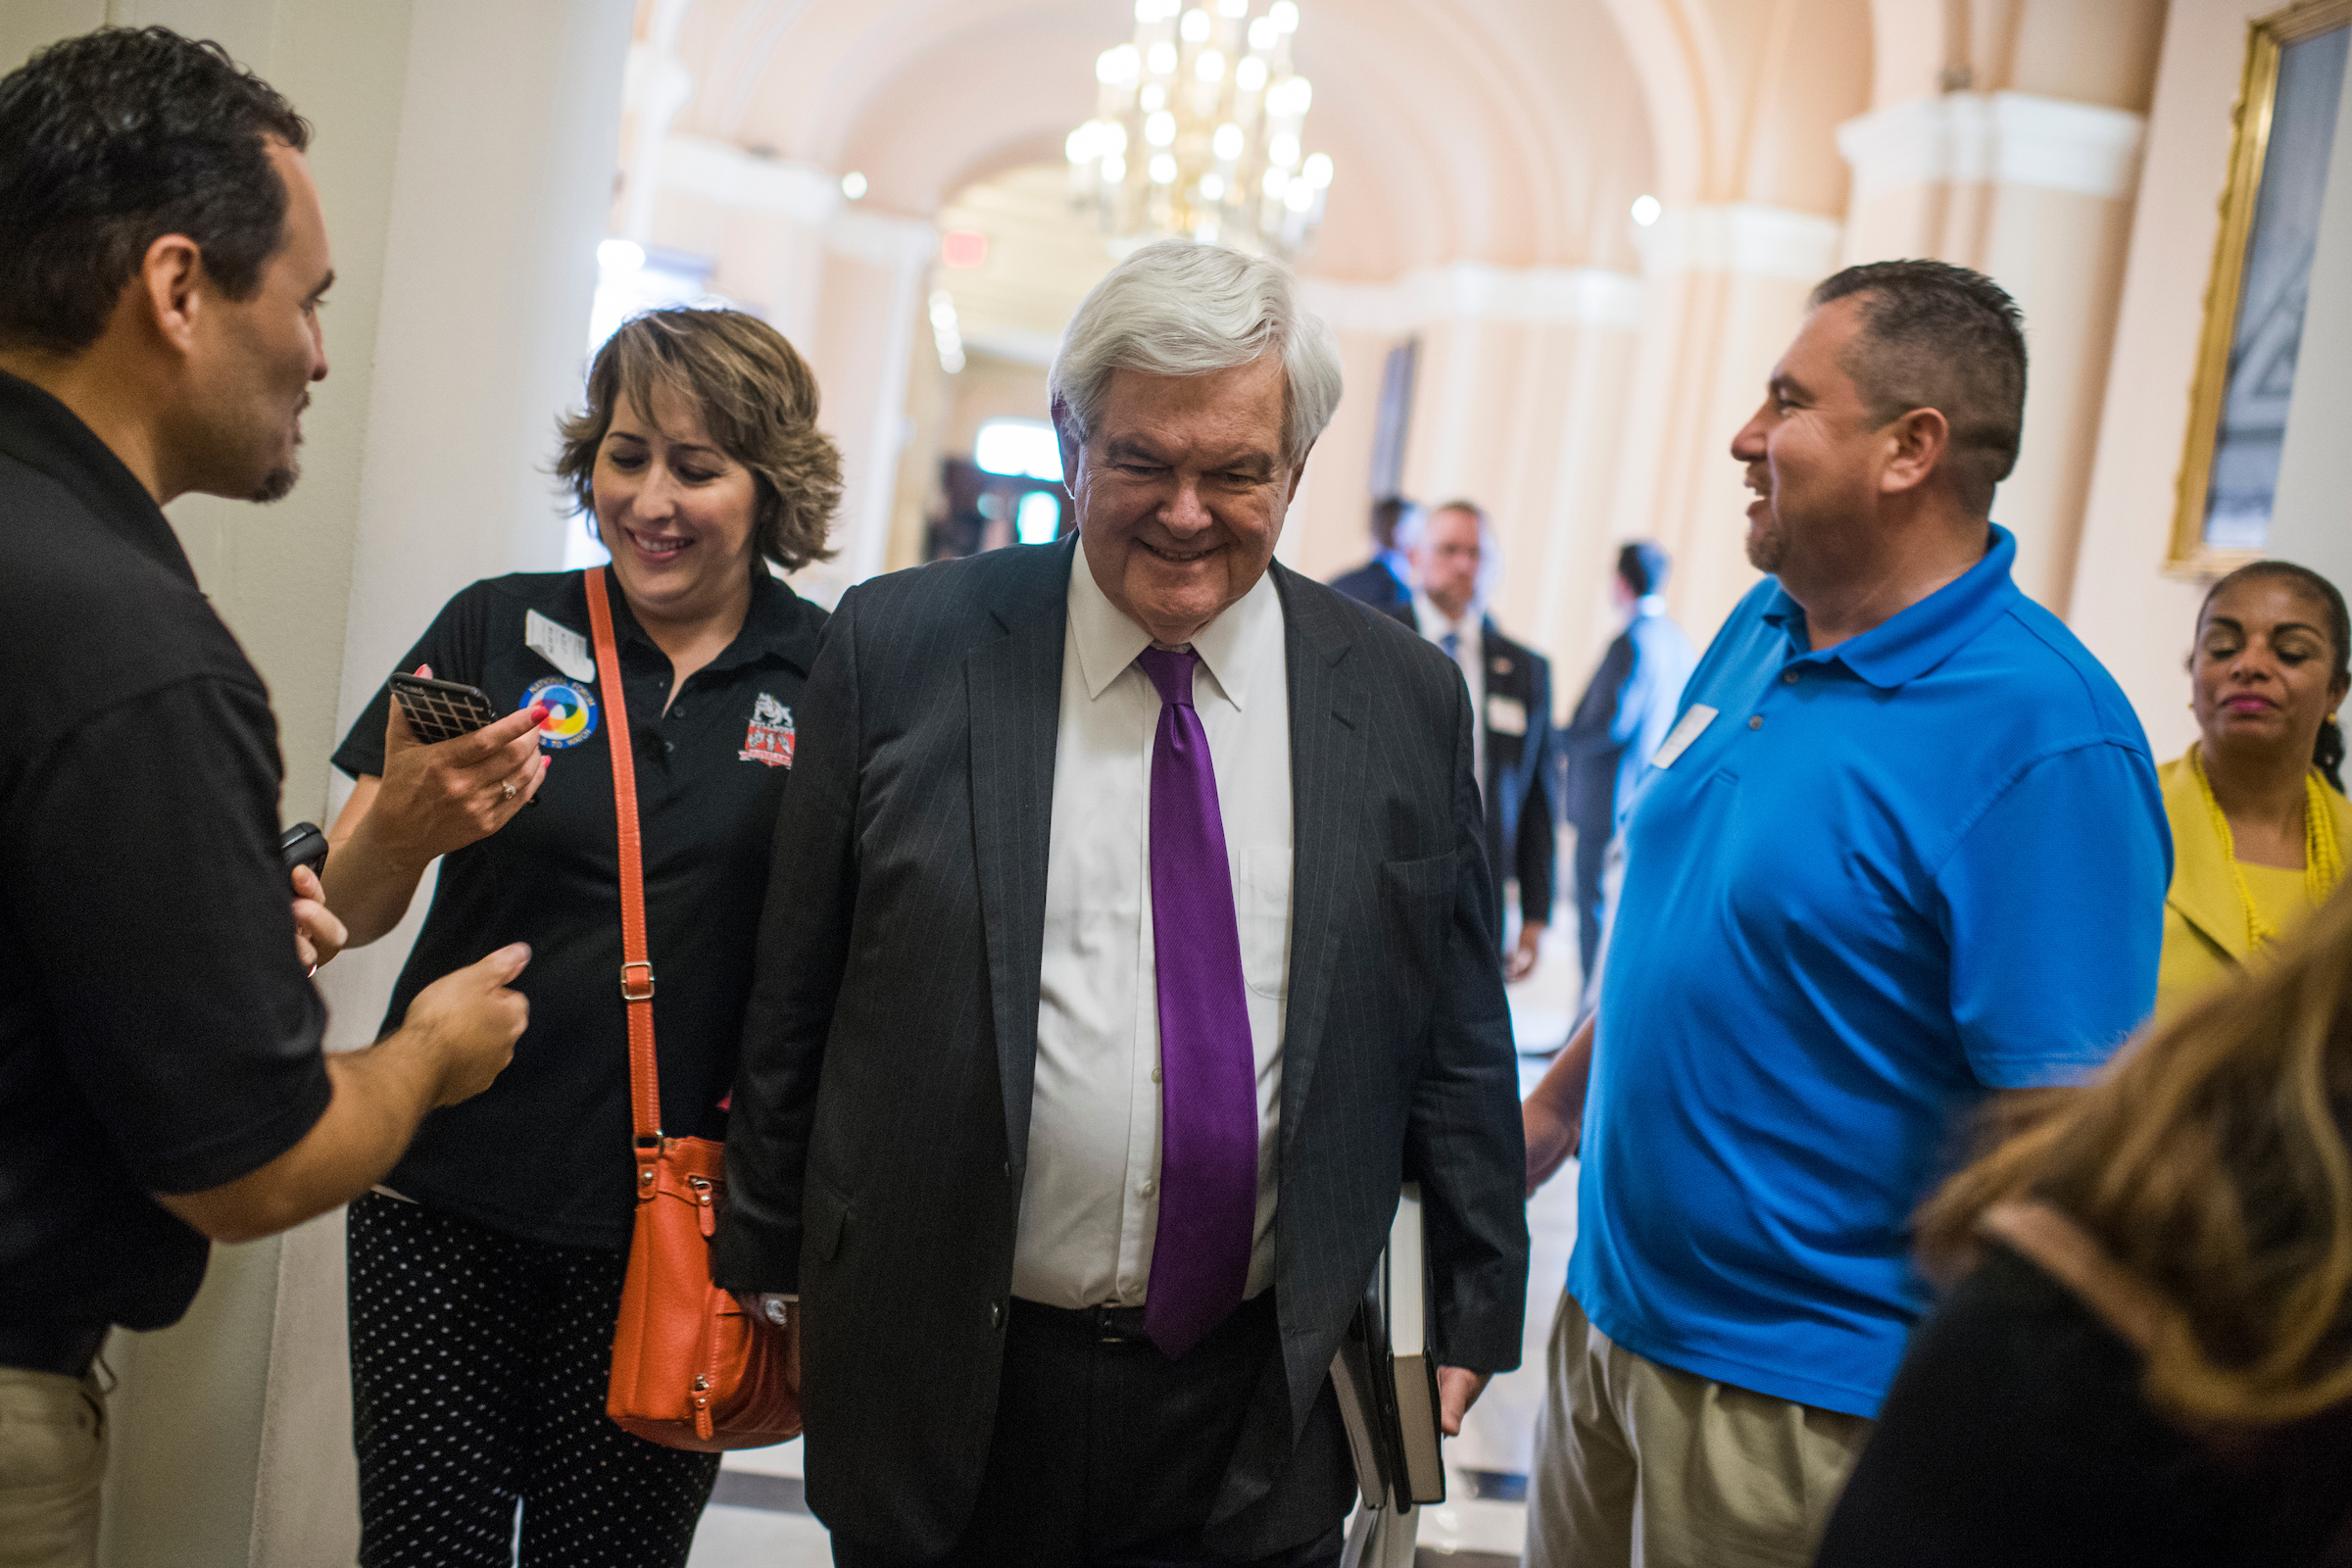 Former Speaker Newt Gingrich, R-Ga., makes his way to the Capitol office of House Majority Leader Kevin McCarthy, R-Calif. (Tom Williams/CQ Roll Call File Photo)